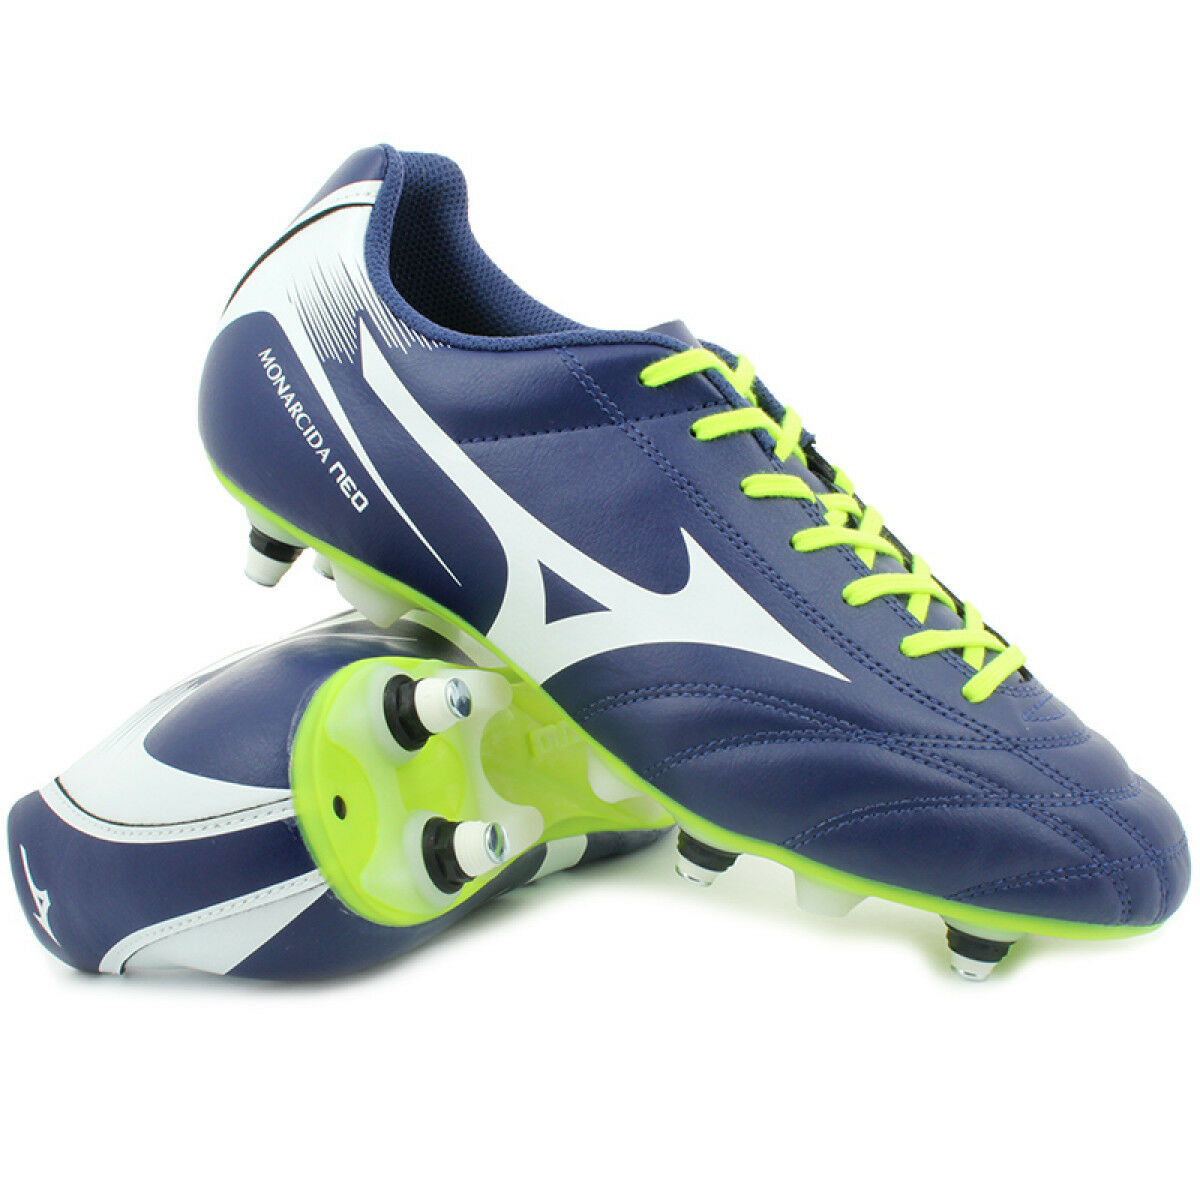 shoes CALCIO MISTA MIZUNO MONARCIDA NEO MIX blue yellow LIME P1GC172402